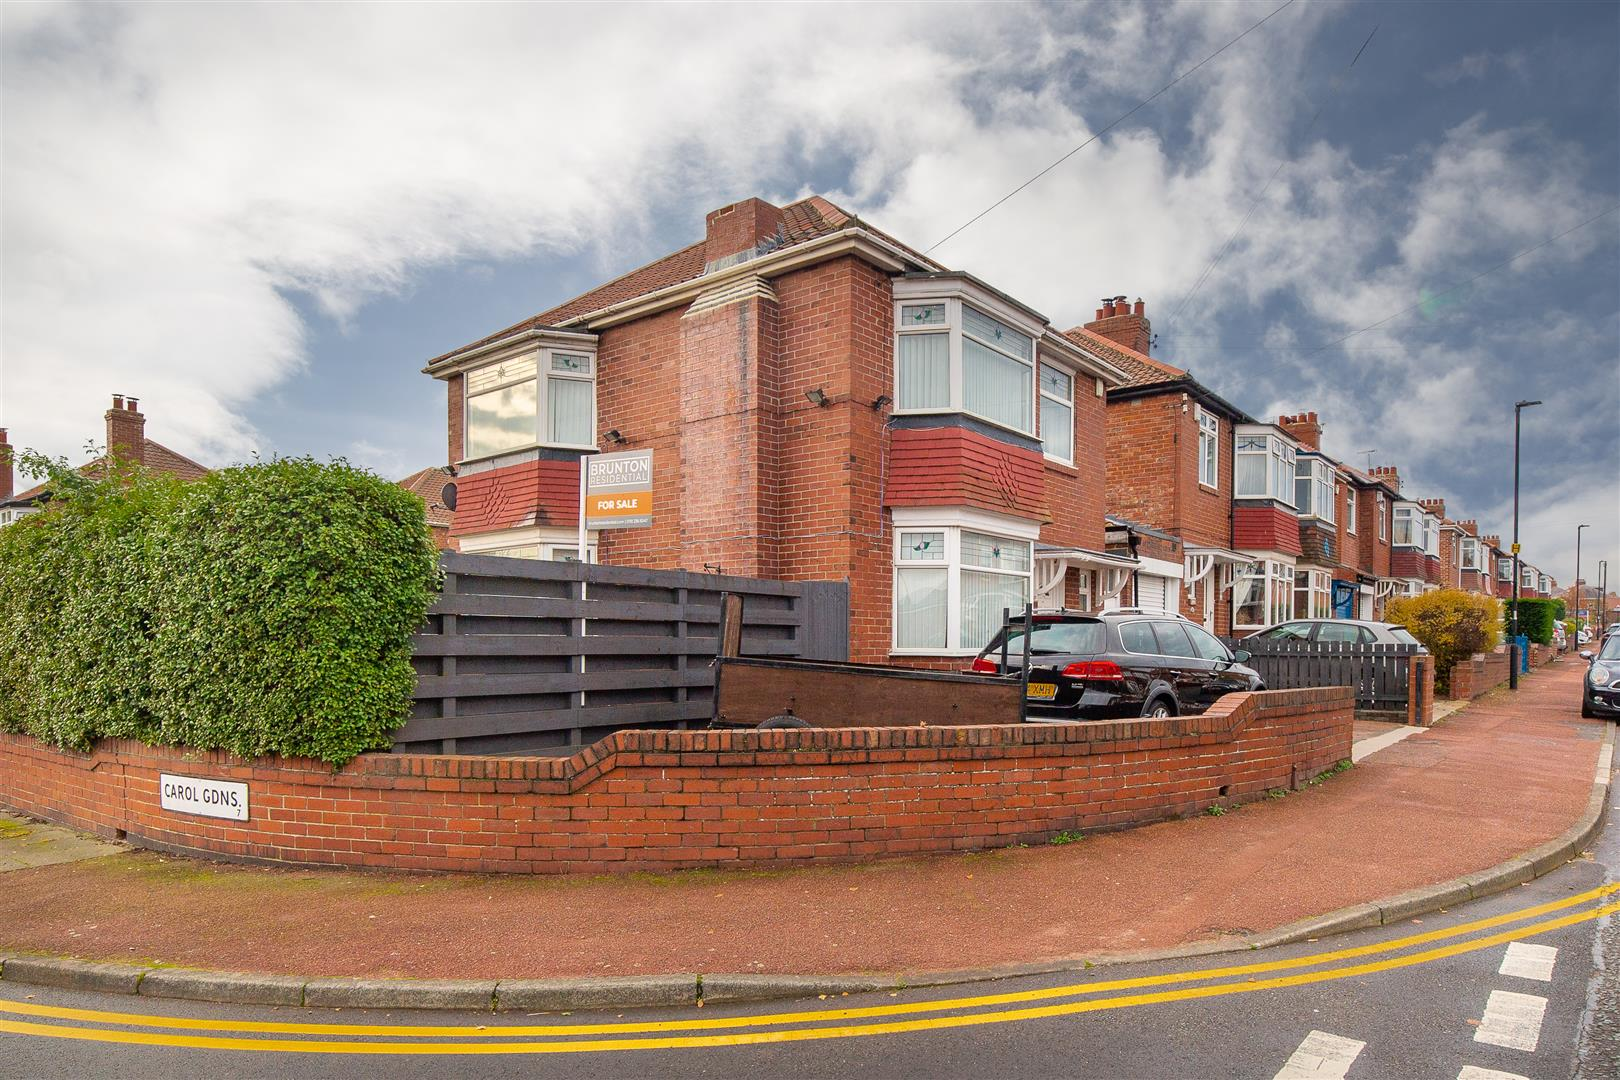 3 bed detached house for sale in Dovedale Gardens, High Heaton - Property Image 1